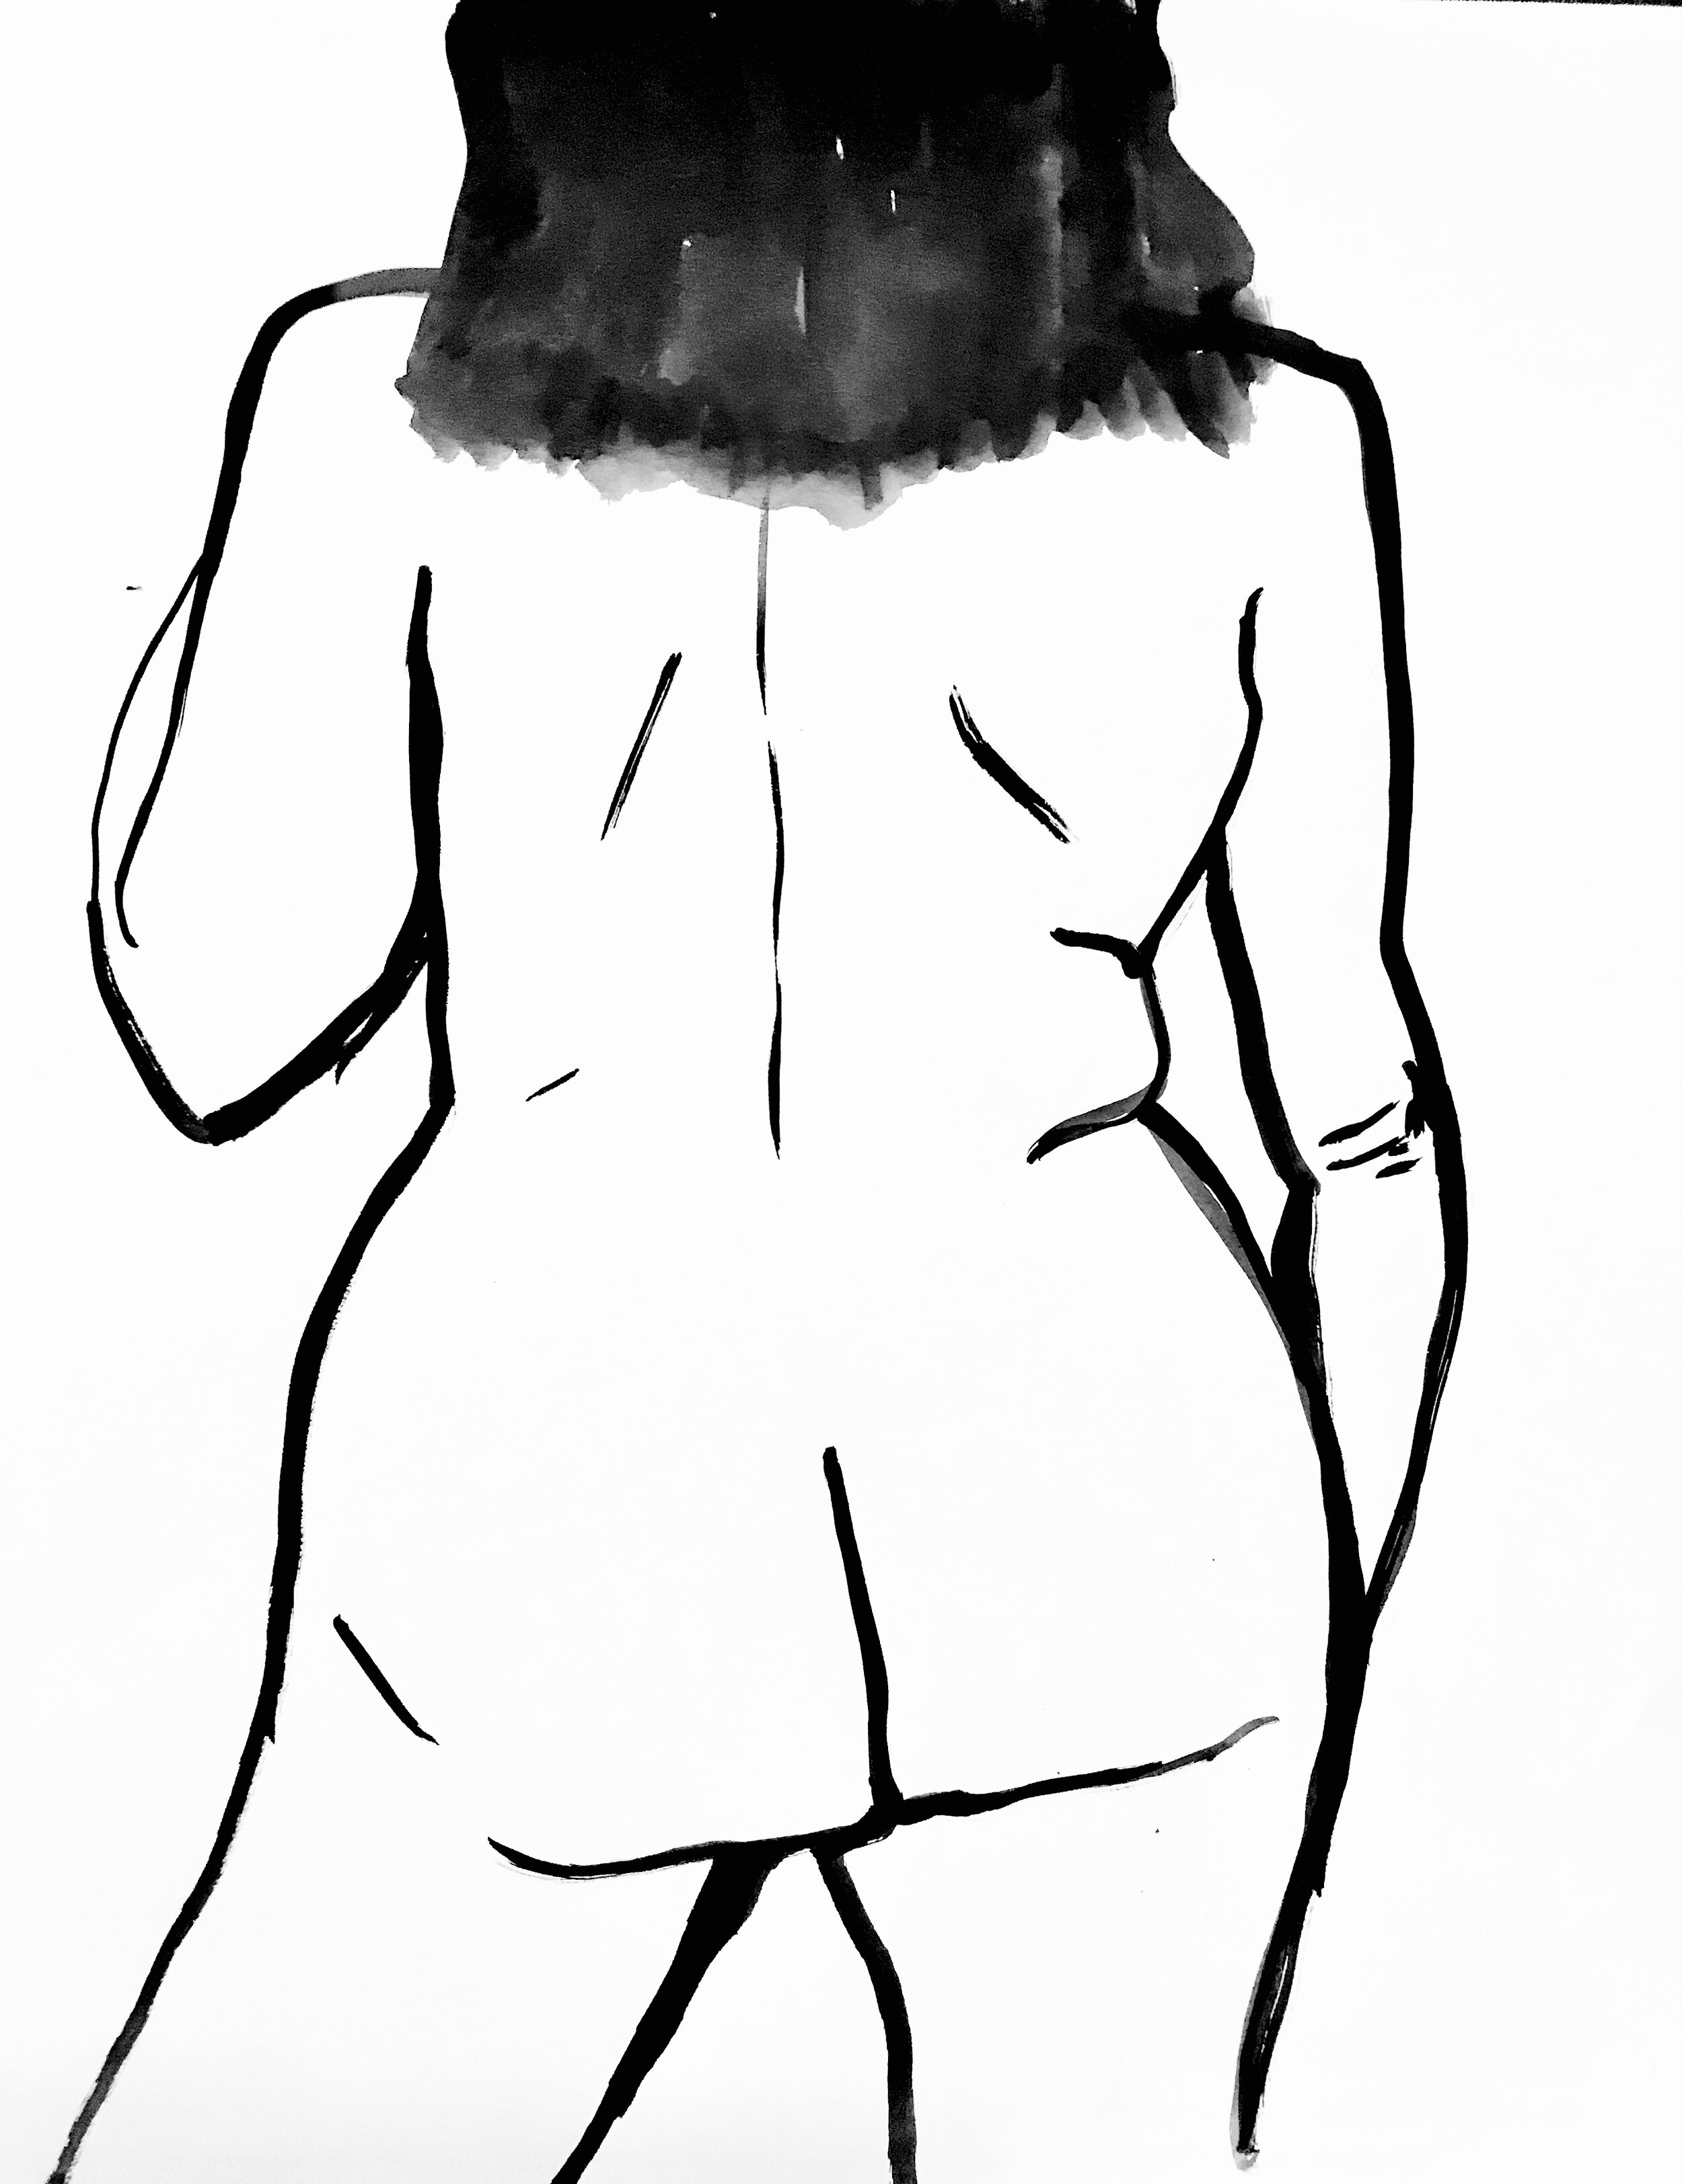 figurative studies - India ink drawings inspired by local womxn contributing to The Body Project